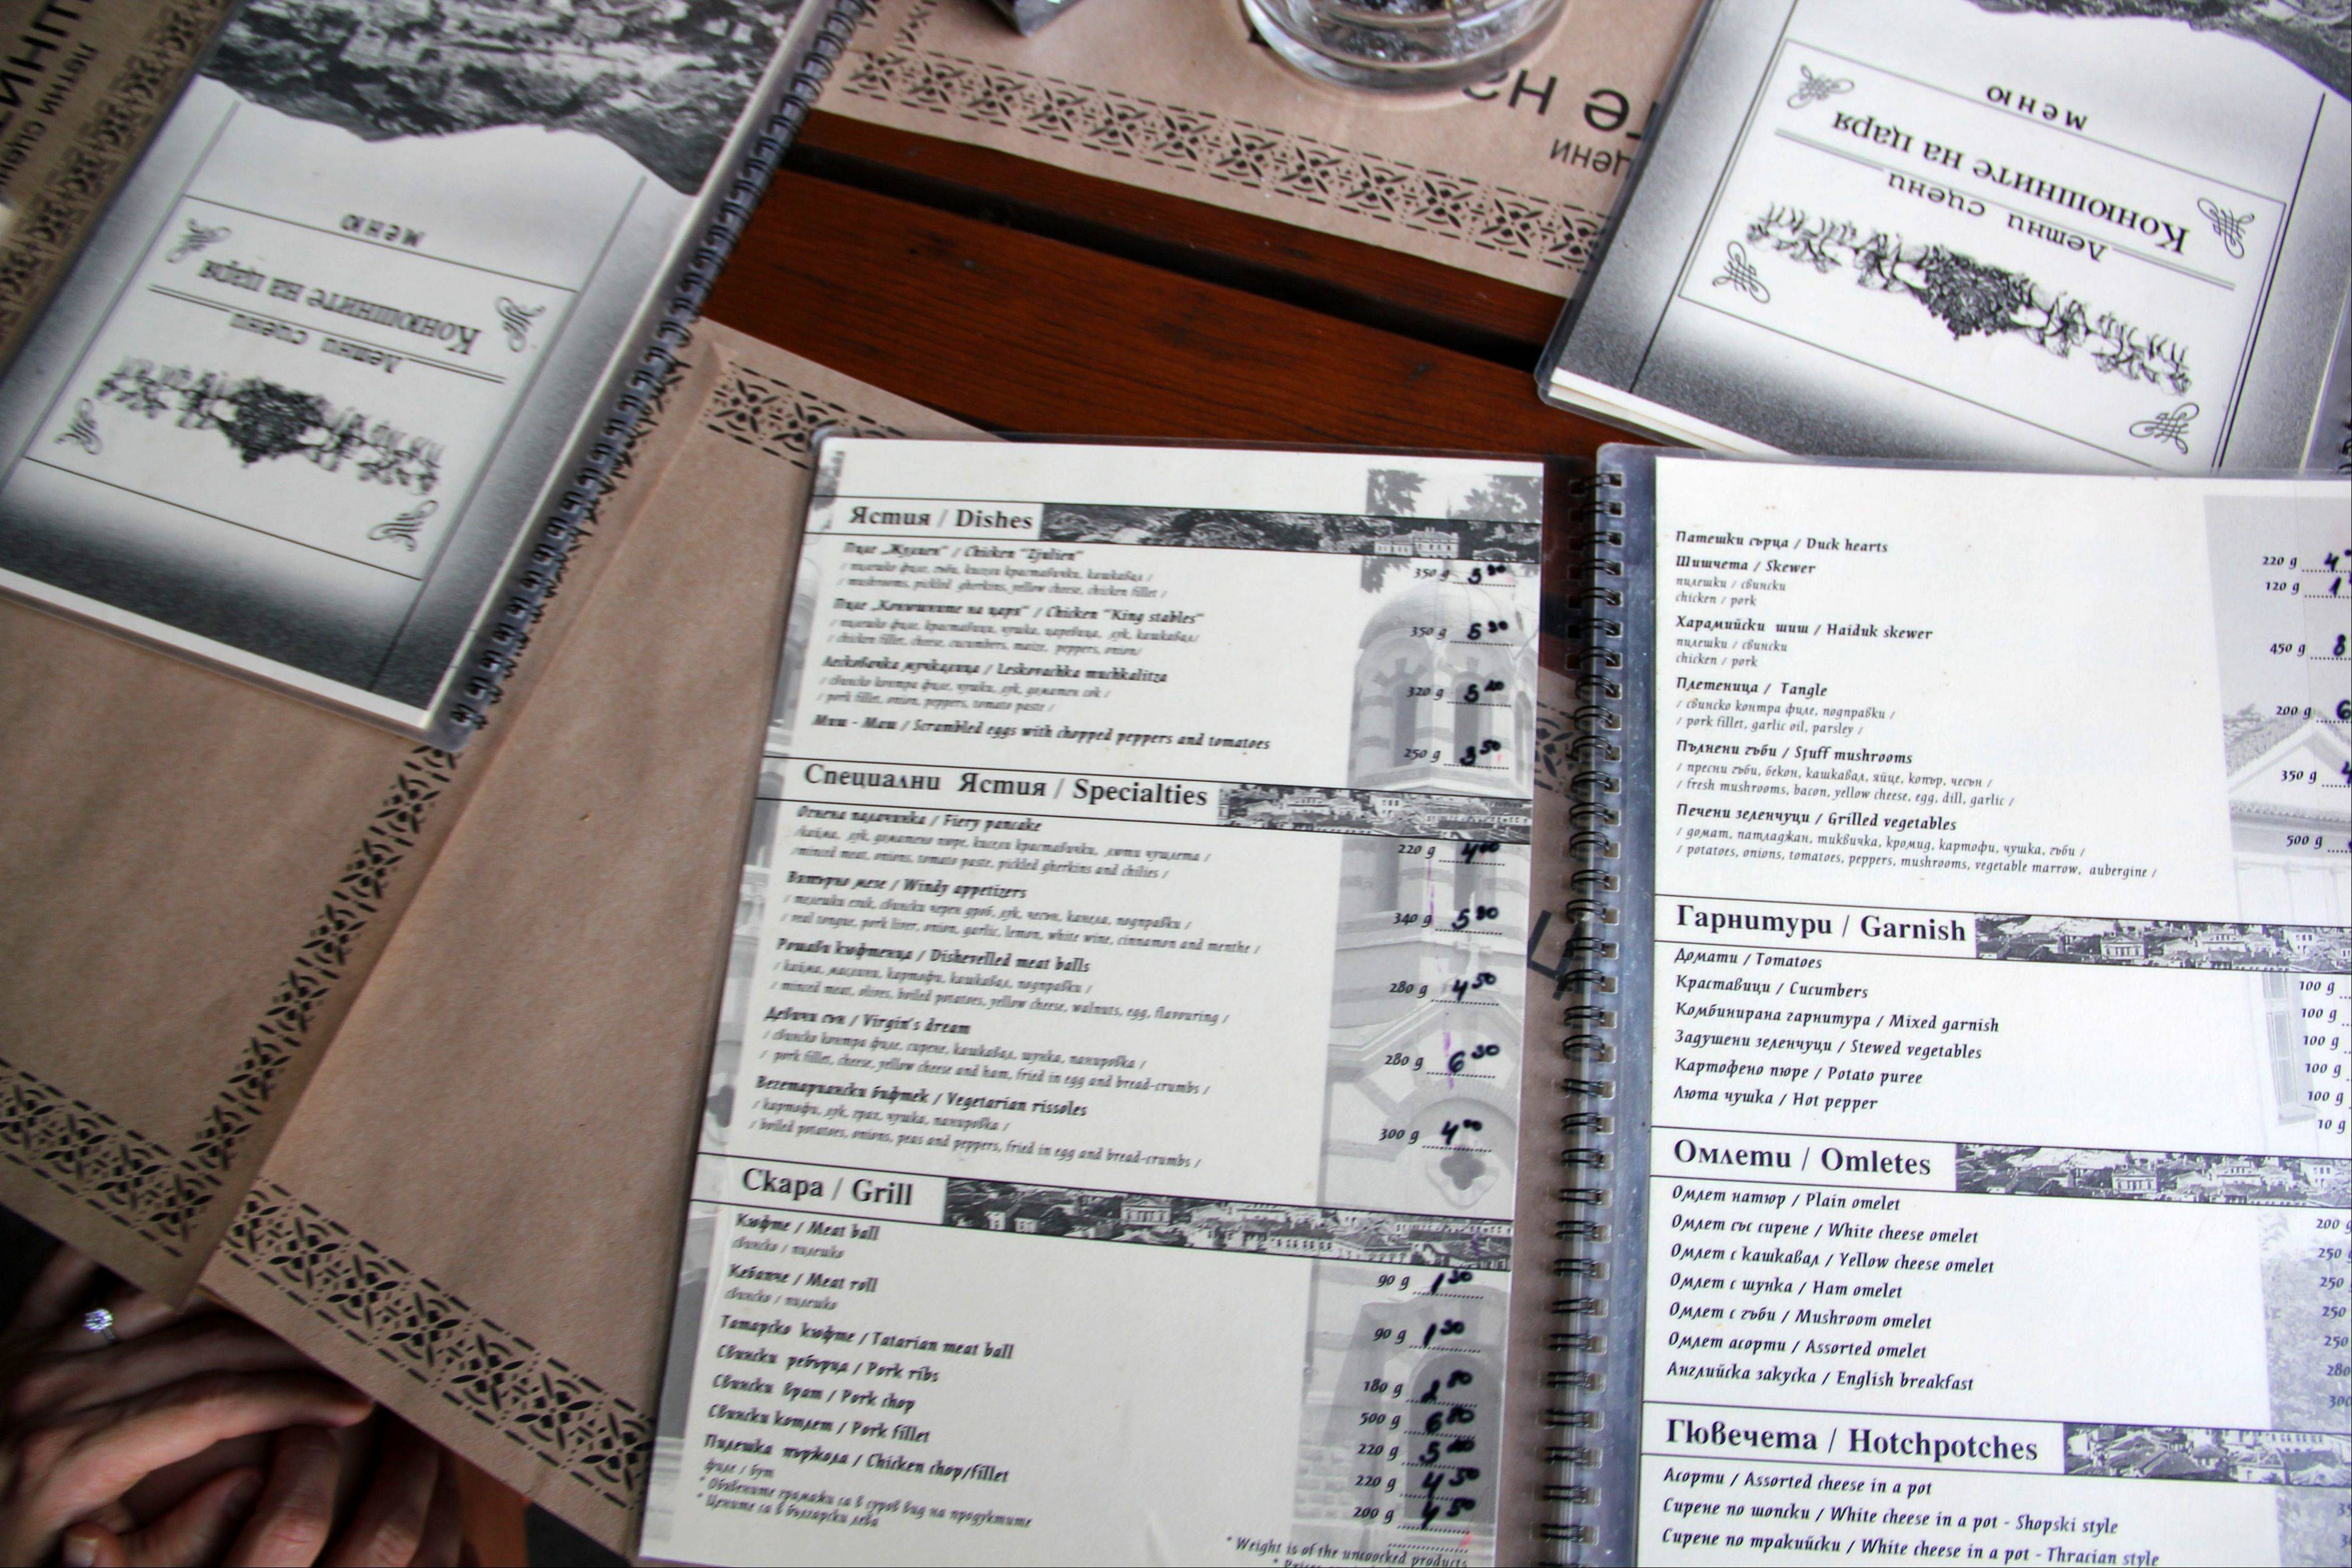 Menus in Plovdiv, Bulgaria have English translations.